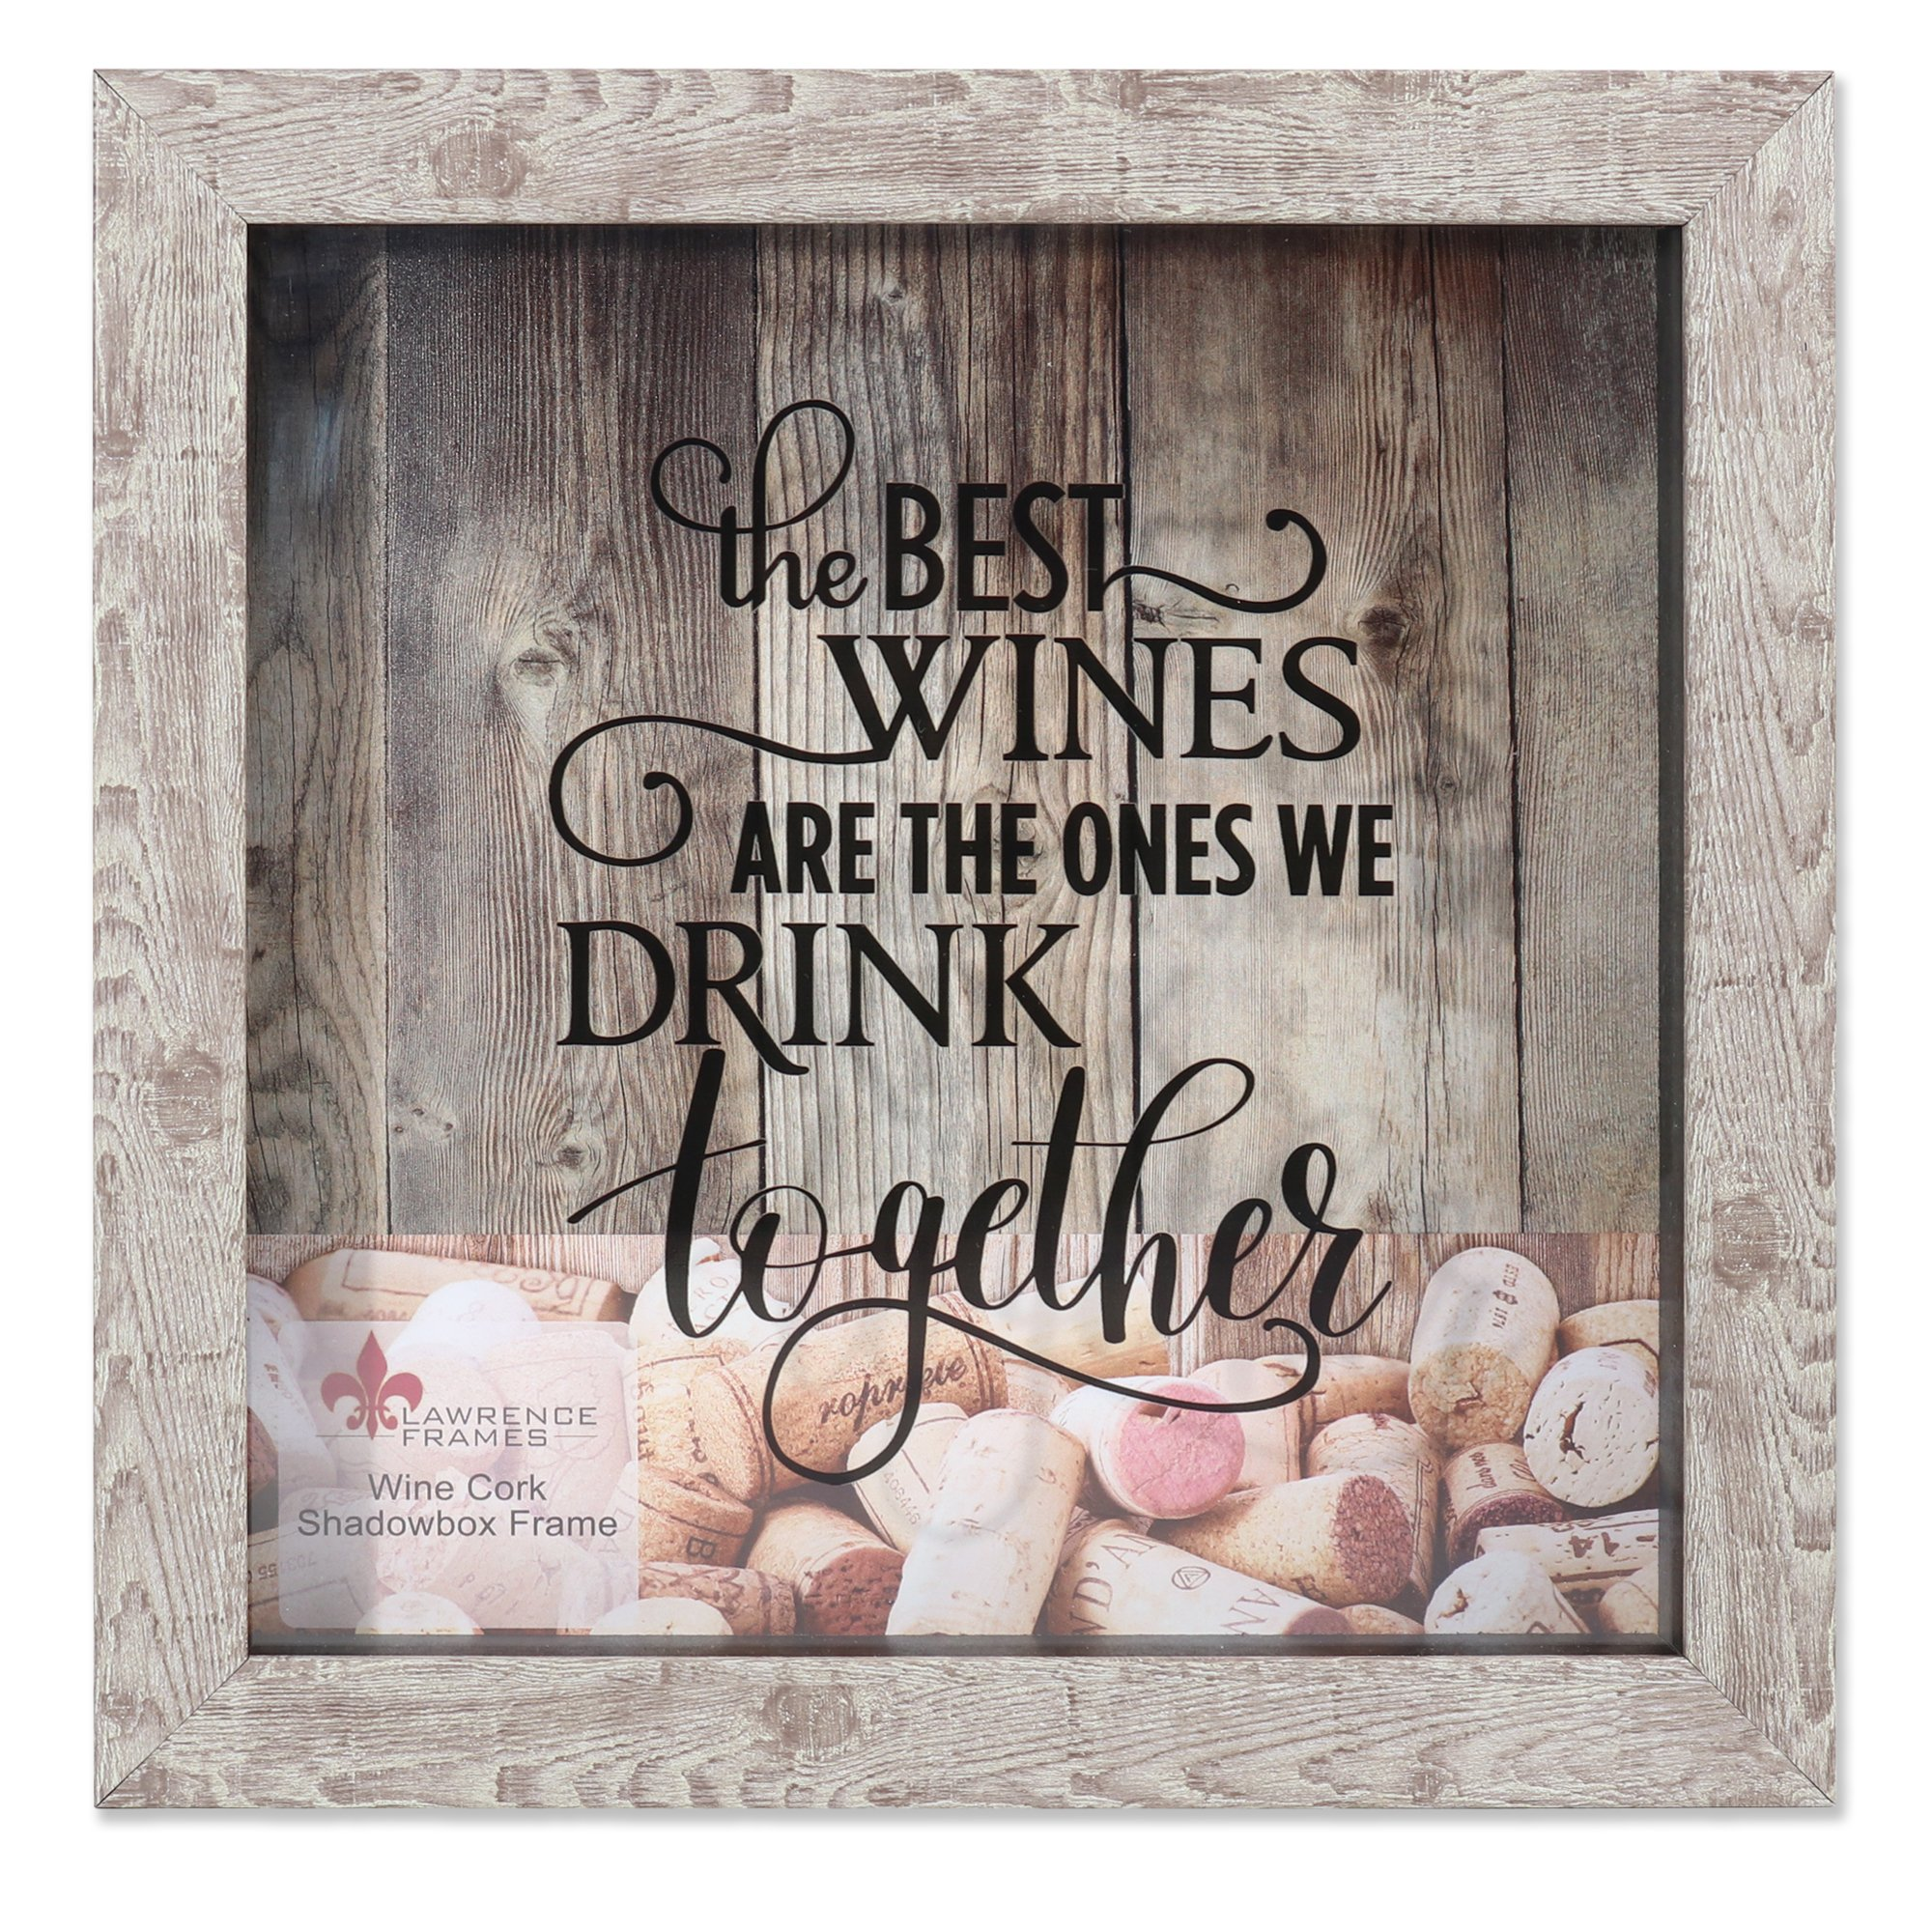 Lawrence Frames 10x10 Weathered Birch Shadow Box Wine Cork Holder, Brown by Lawrence Frames